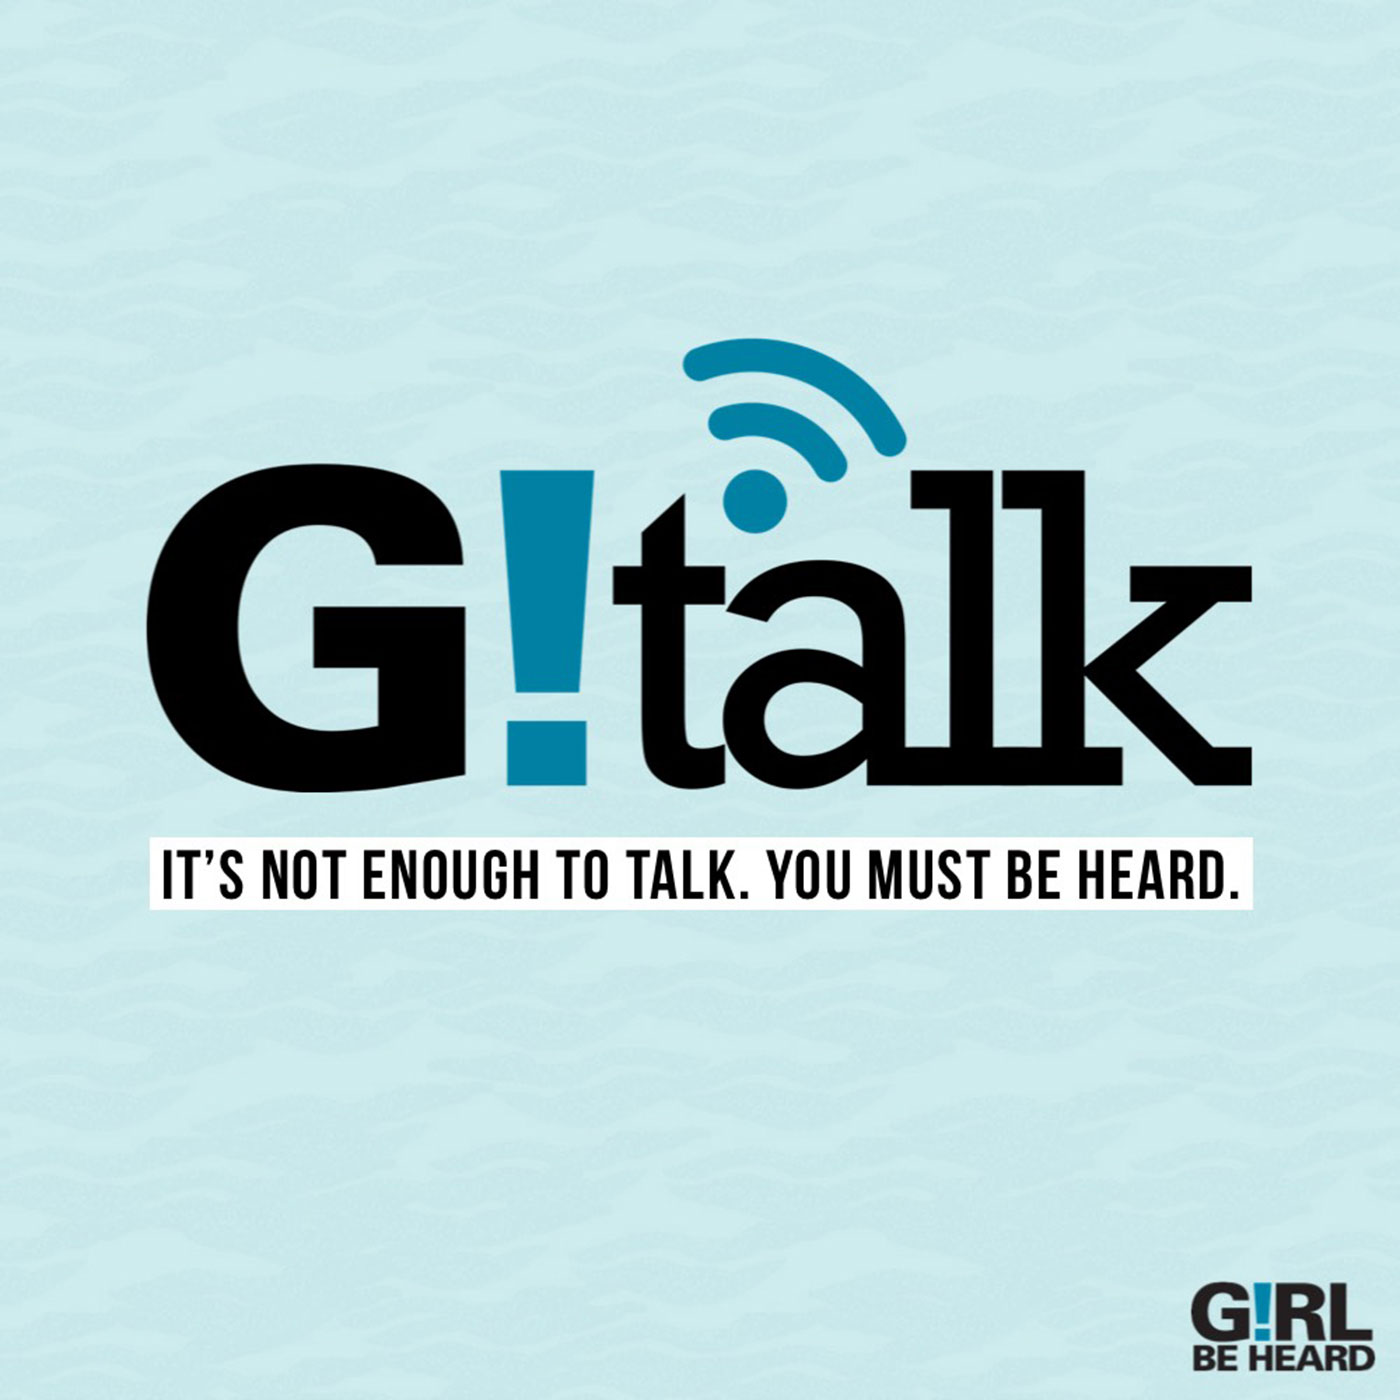 Girl Be Heard GTALK Podcast